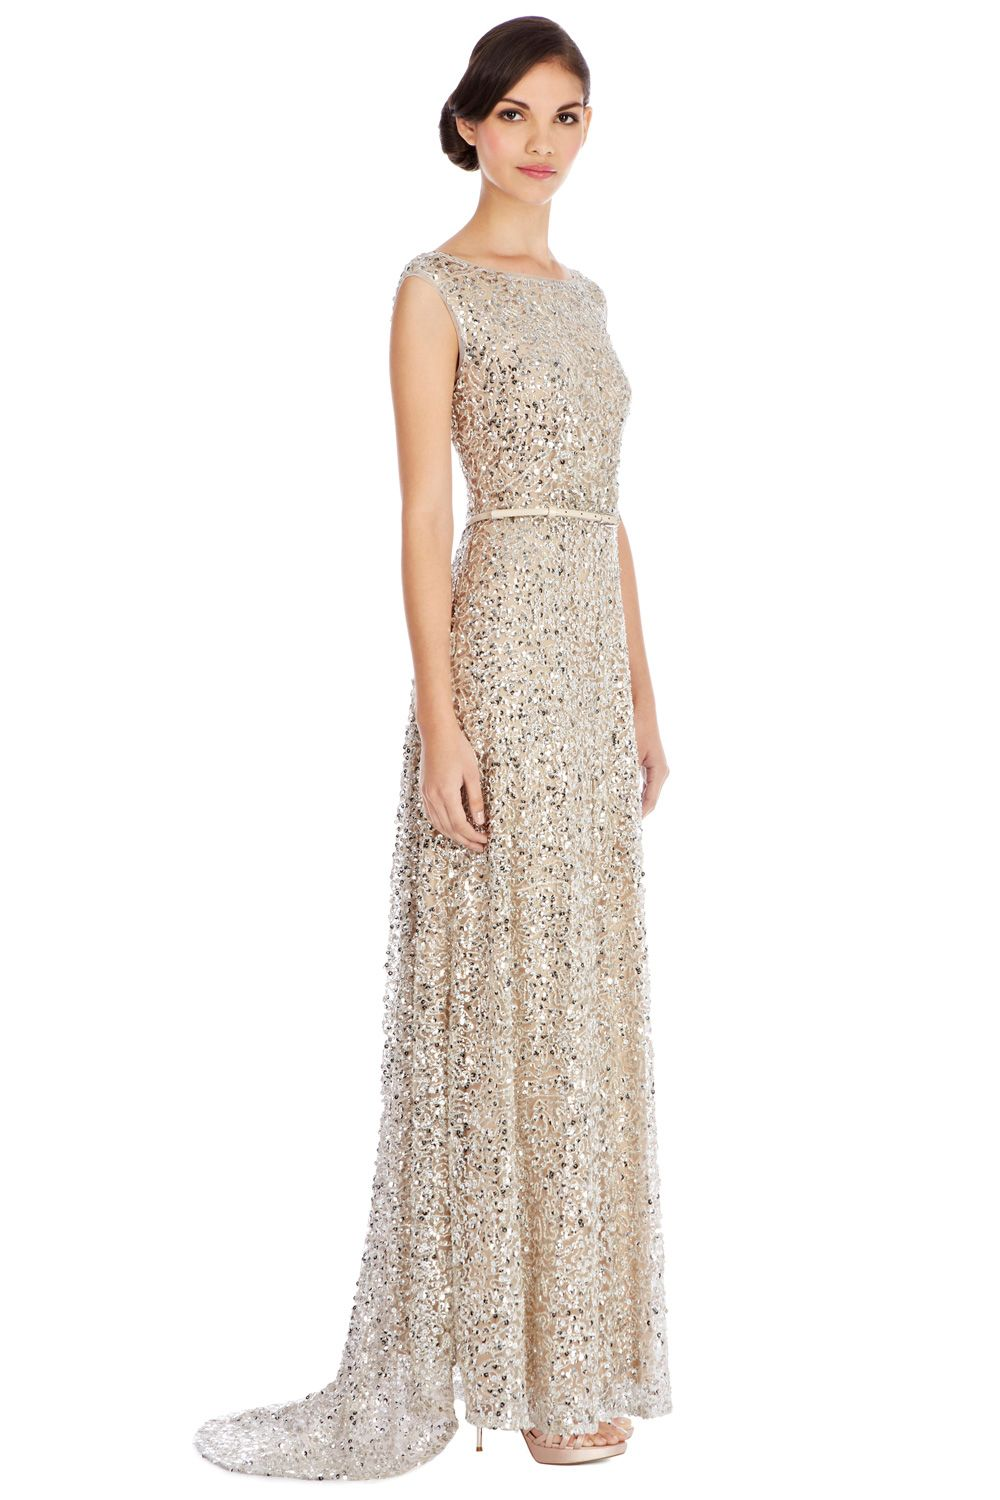 2e64f529dab An exclusive Party Dress dripping in exquisite beading and dazzling sequins.  The Desire Maxi Dress